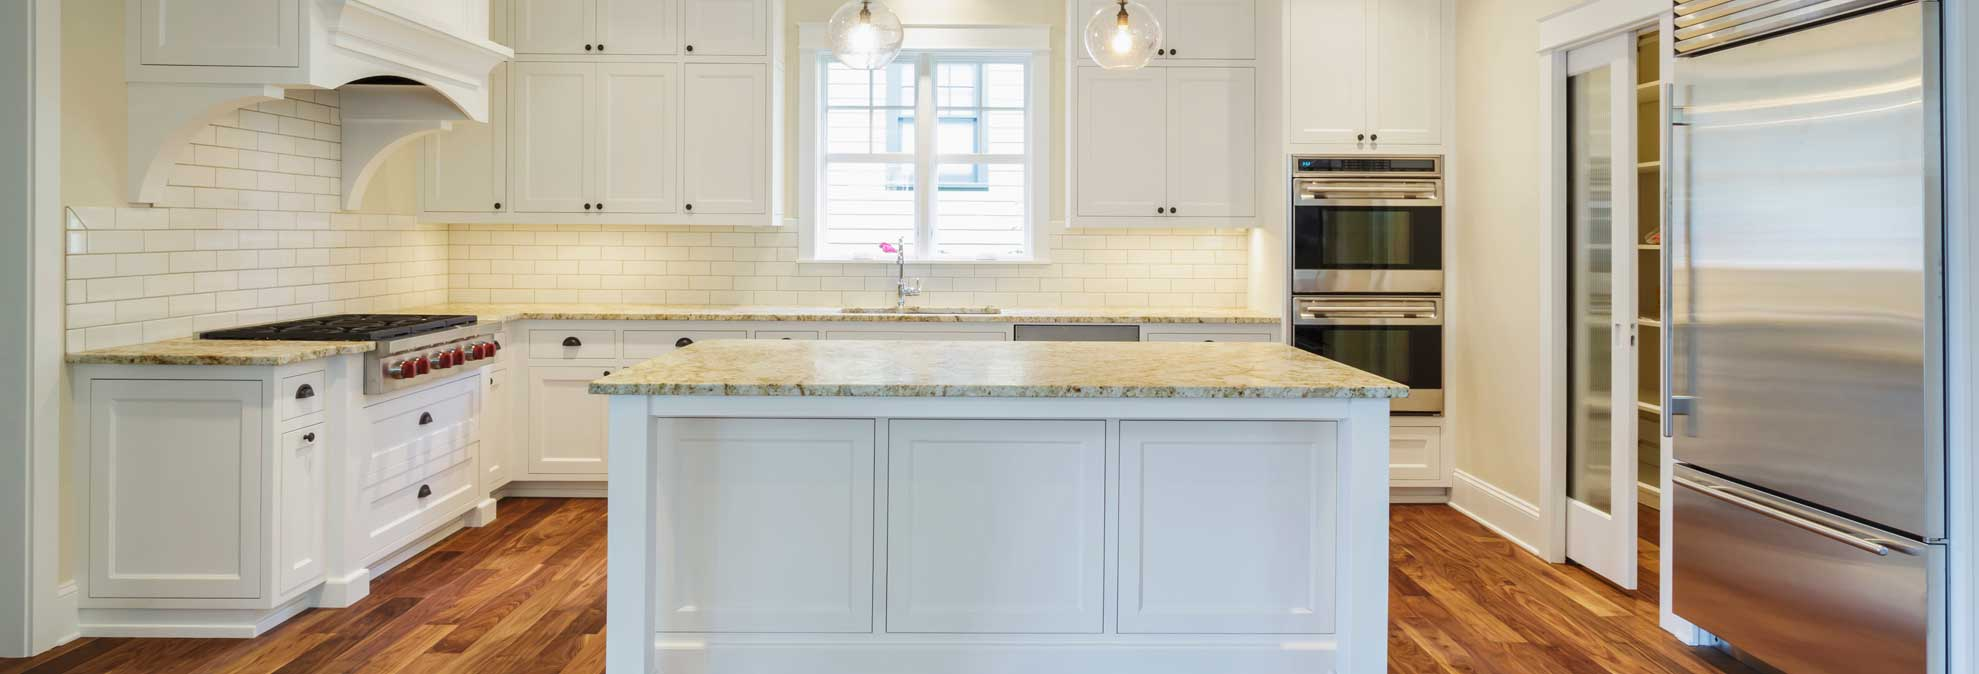 remodel kitchens glass backsplash for kitchen mistakes that will bust your budget consumer reports cookie preference center